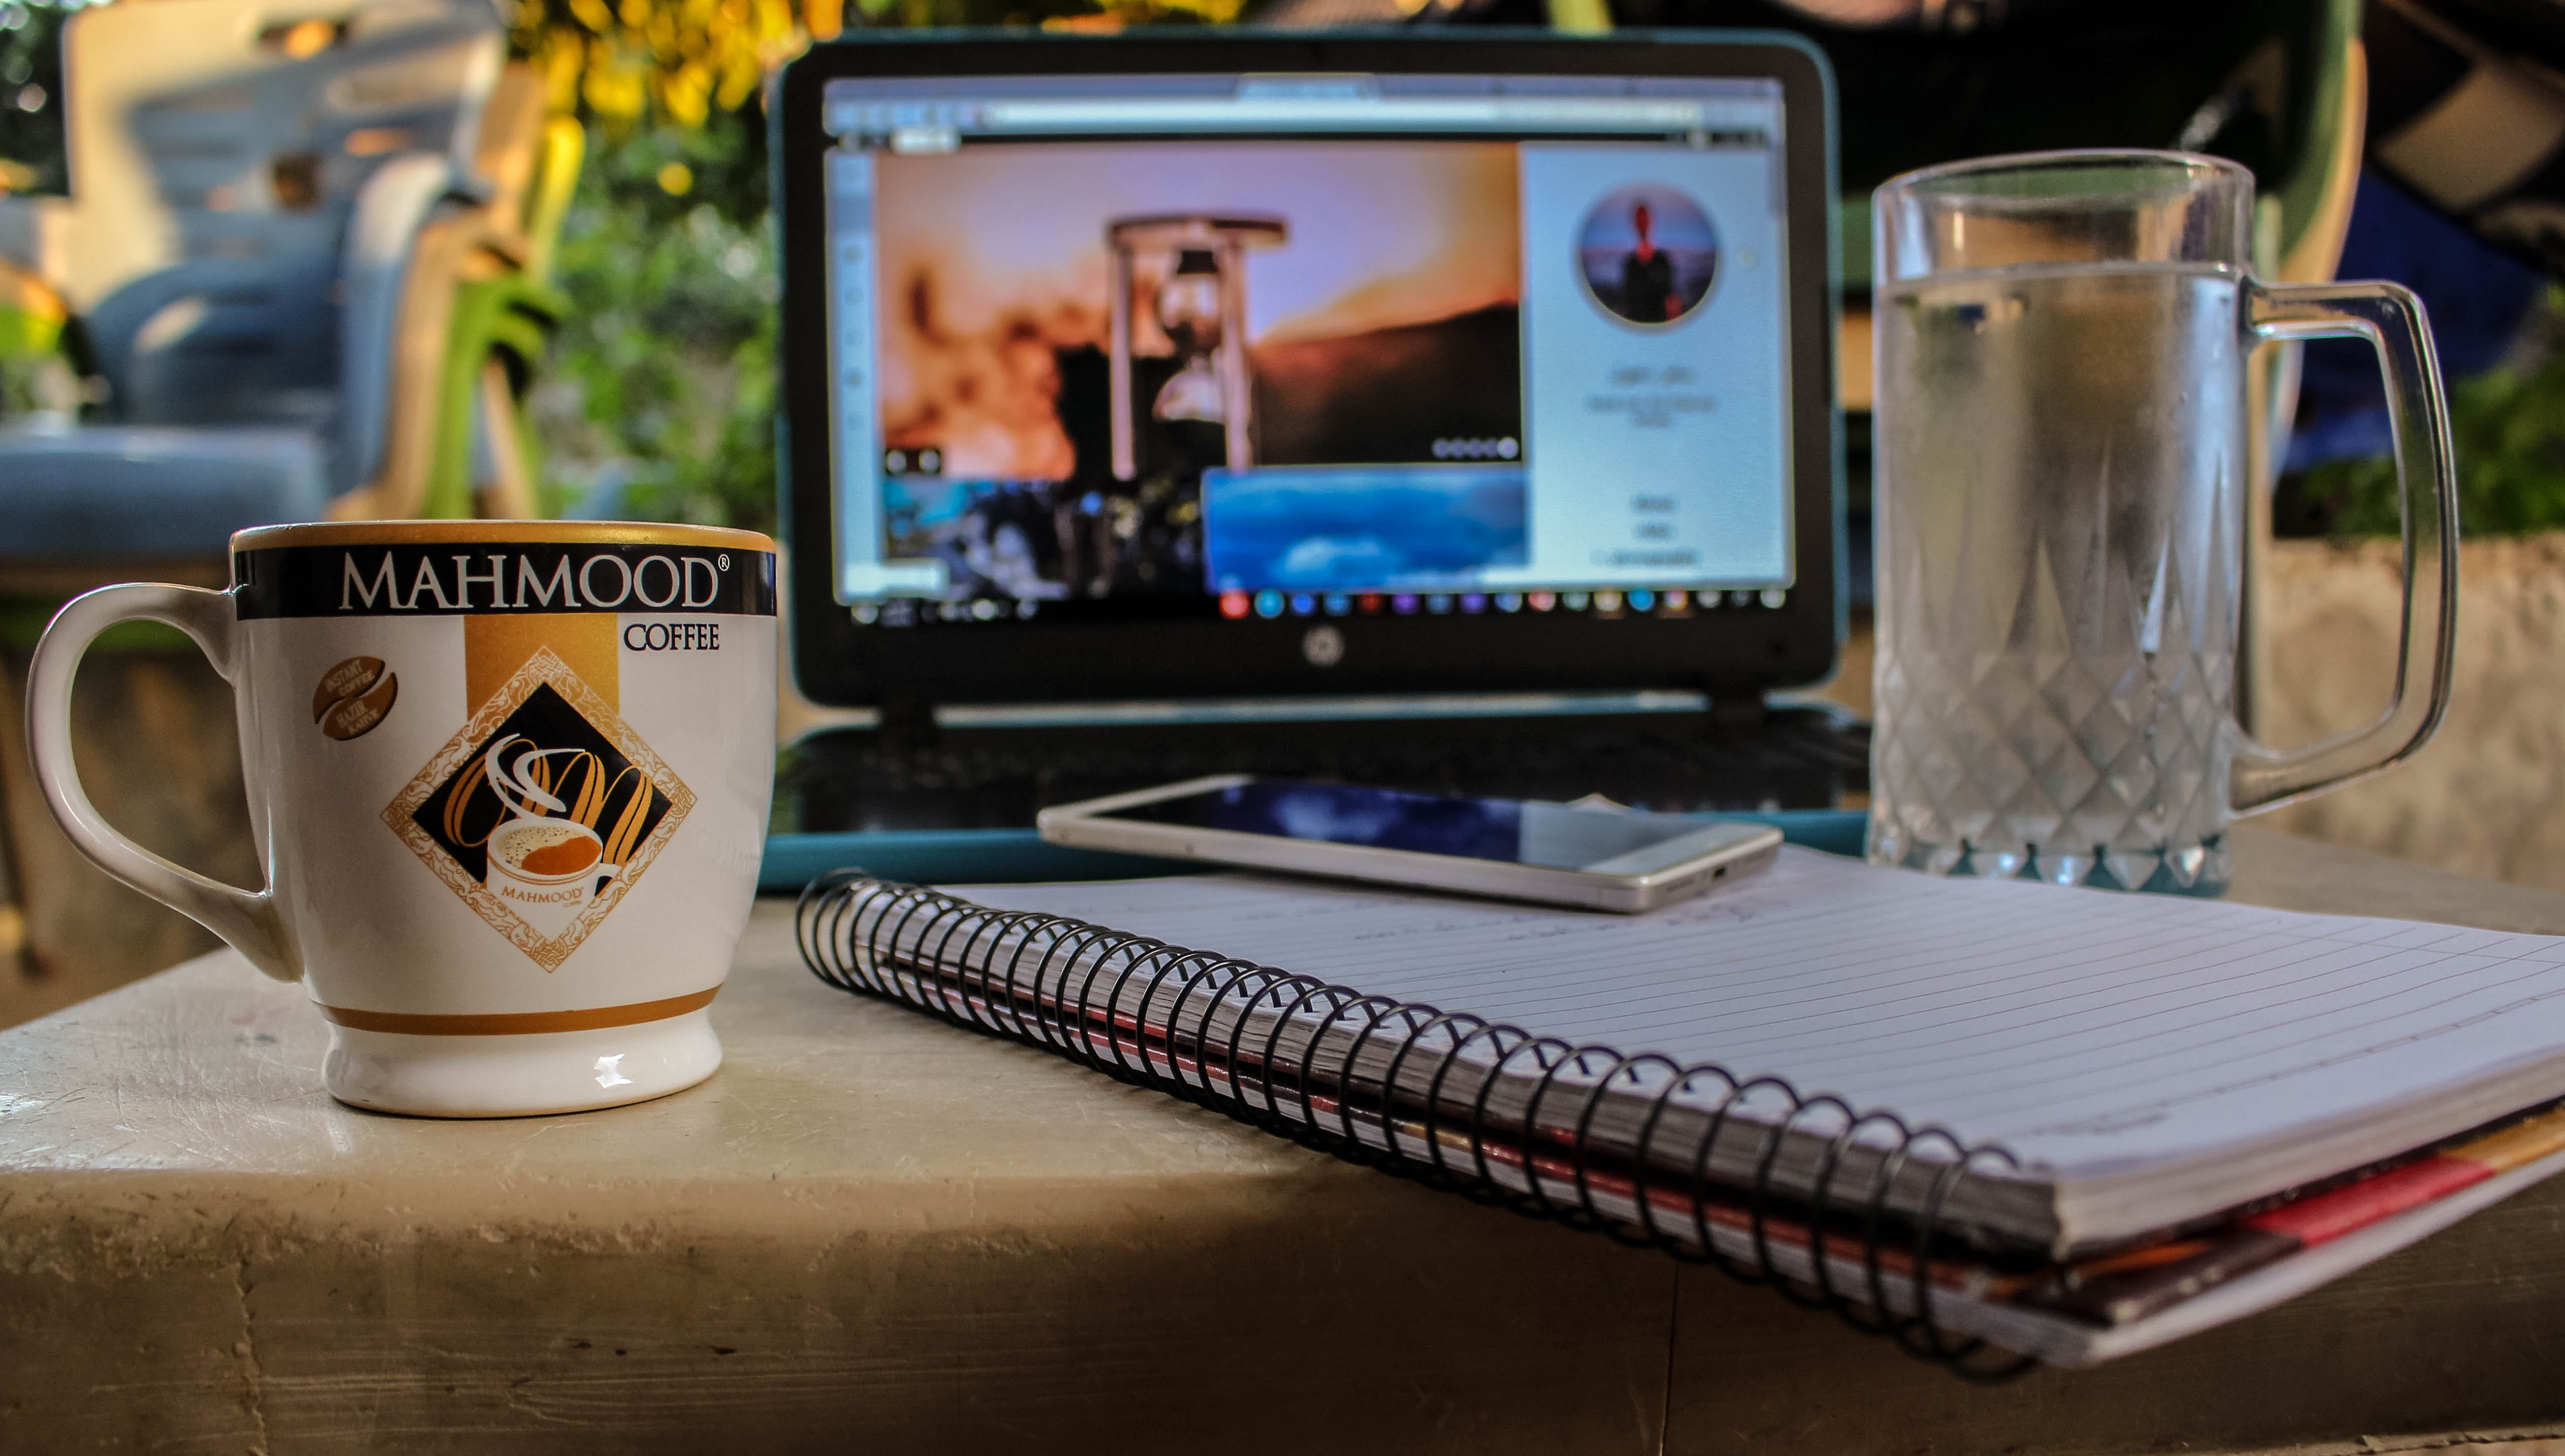 White Smartphone on Spiral Notebook Between Ceramic Mug and Glass Beer Mug Near Black Computer Monitor Showing Hour Glass